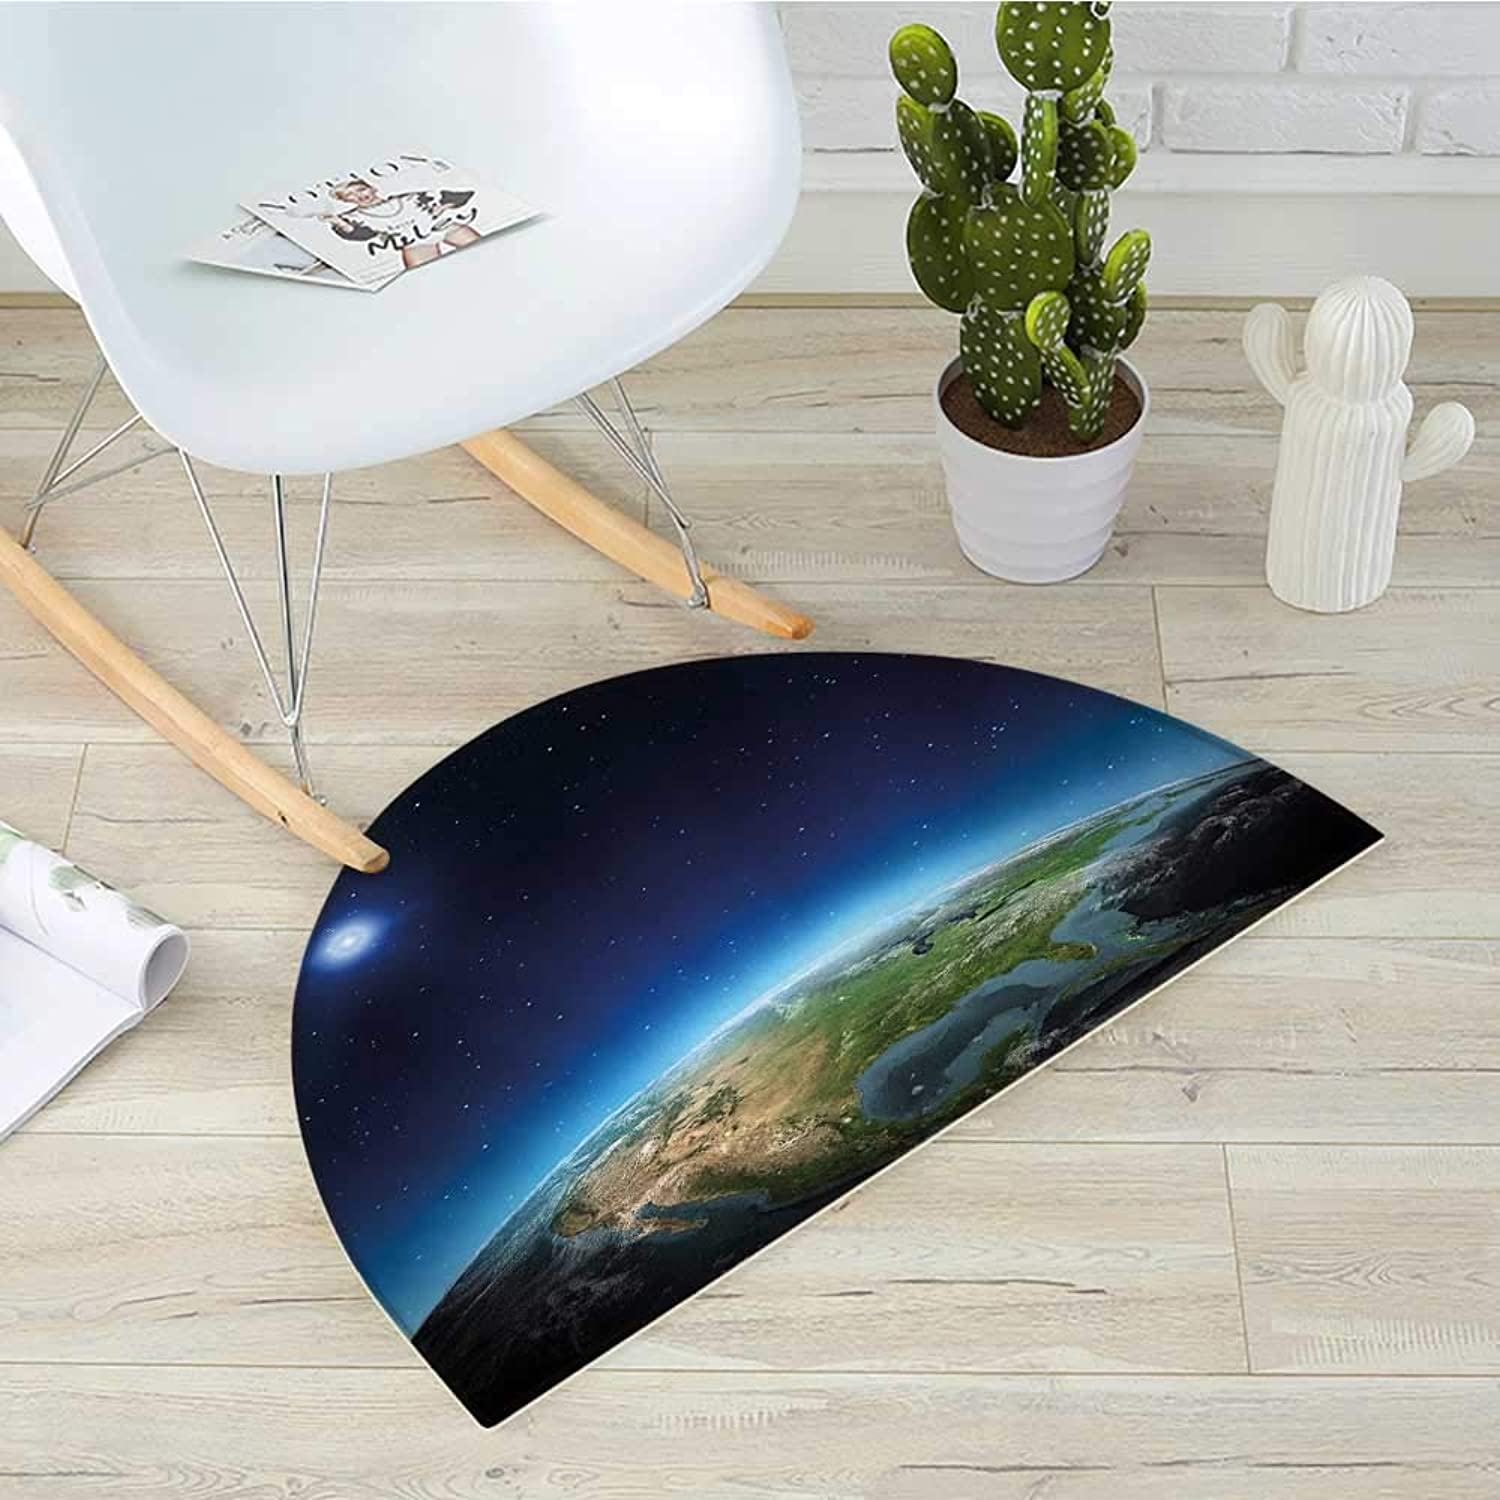 Earth Half Round Door mats North America Continent on Globe Earth Galaxy Milky Way Realistic View Bathroom Mat H 39.3  xD 59  Indigo Pale bluee Green